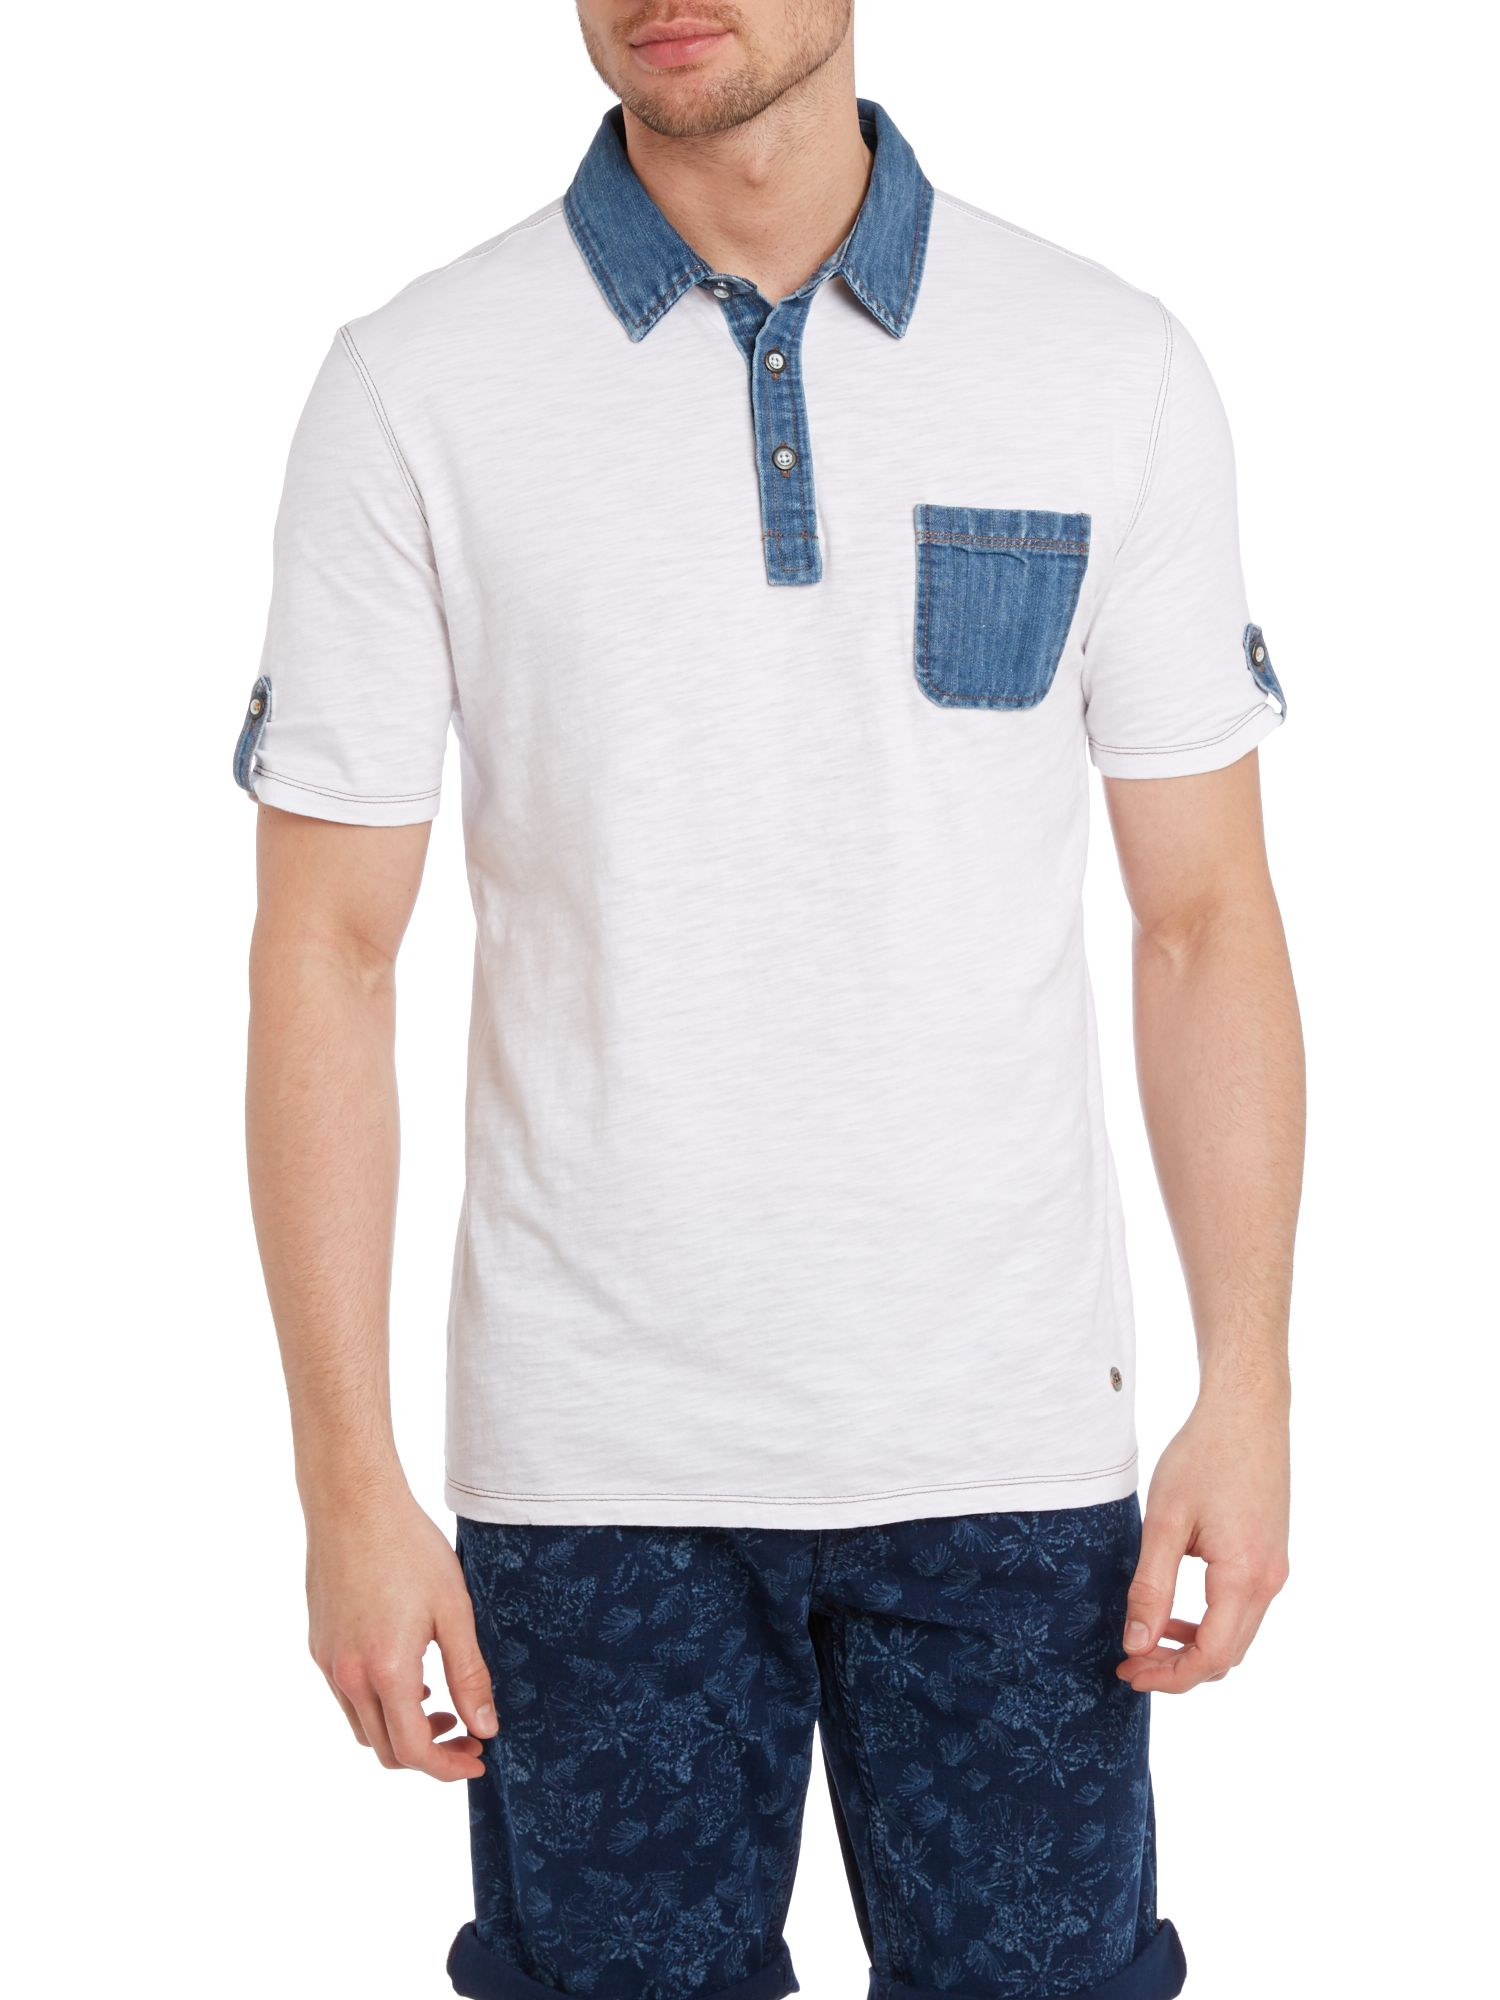 Denim collar polo shirt